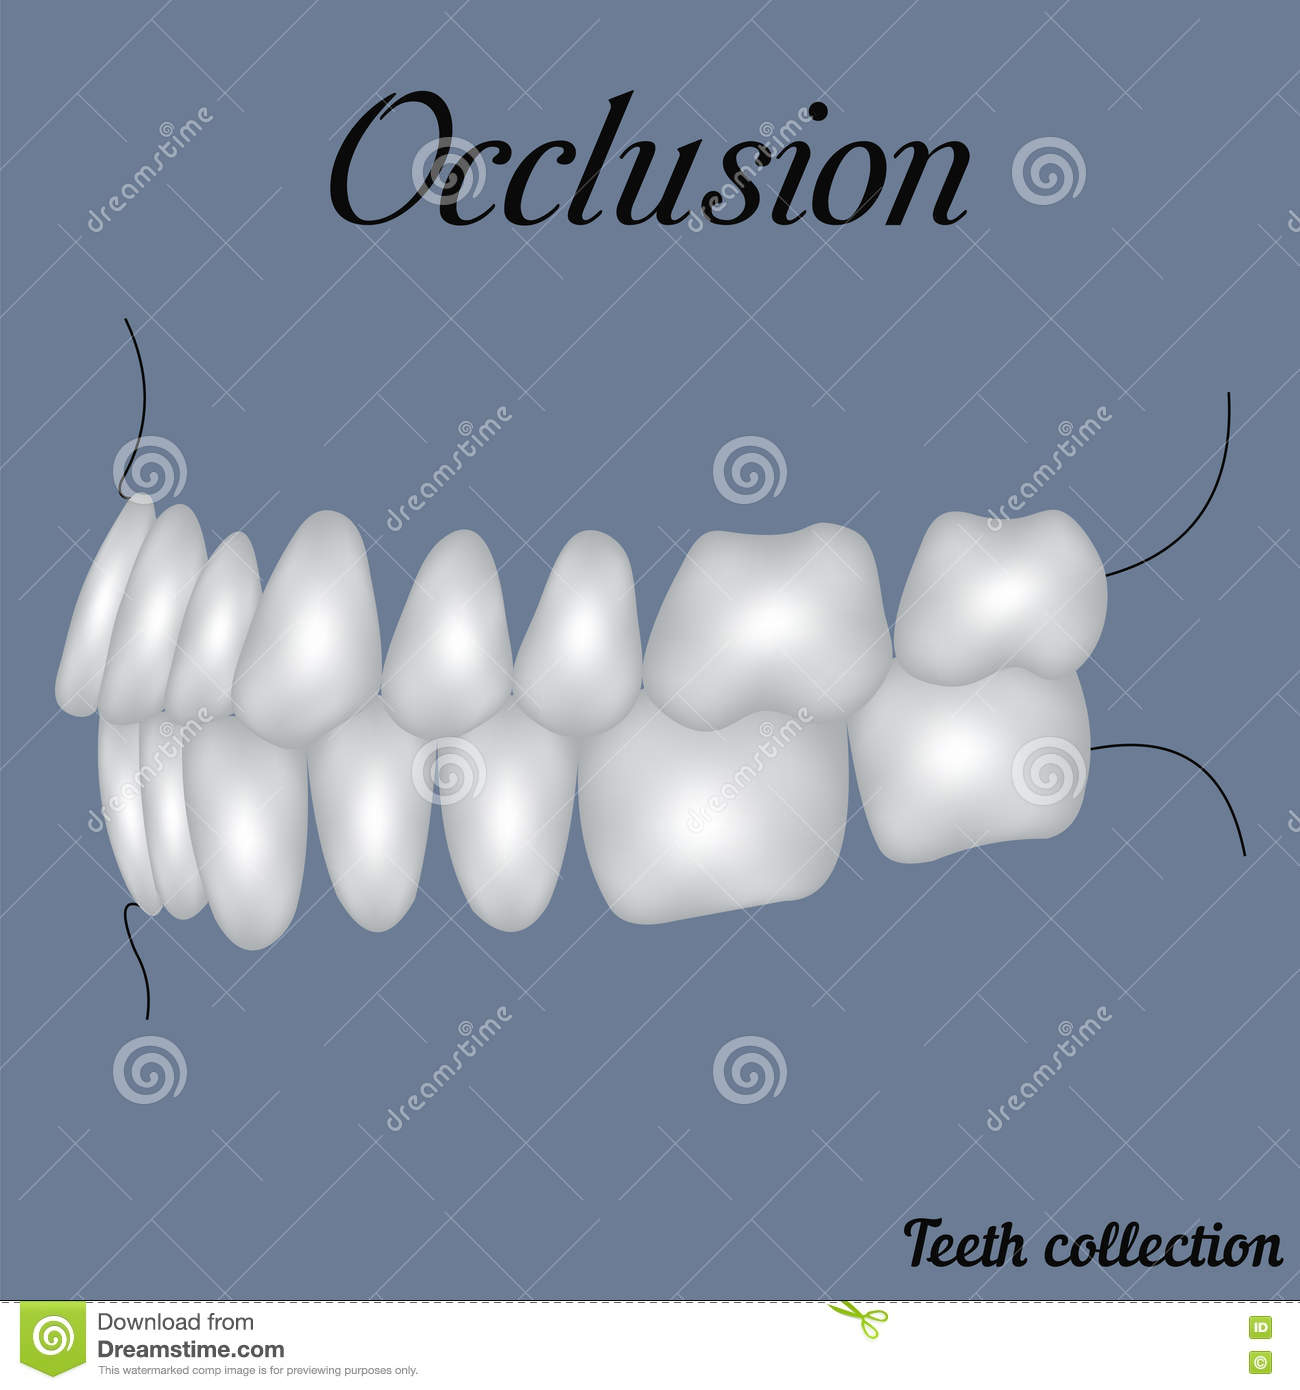 Jawbone stock illustrations 168 jawbone stock illustrations occlusion side view bite closure of teeth incisor canine premolar biocorpaavc Image collections